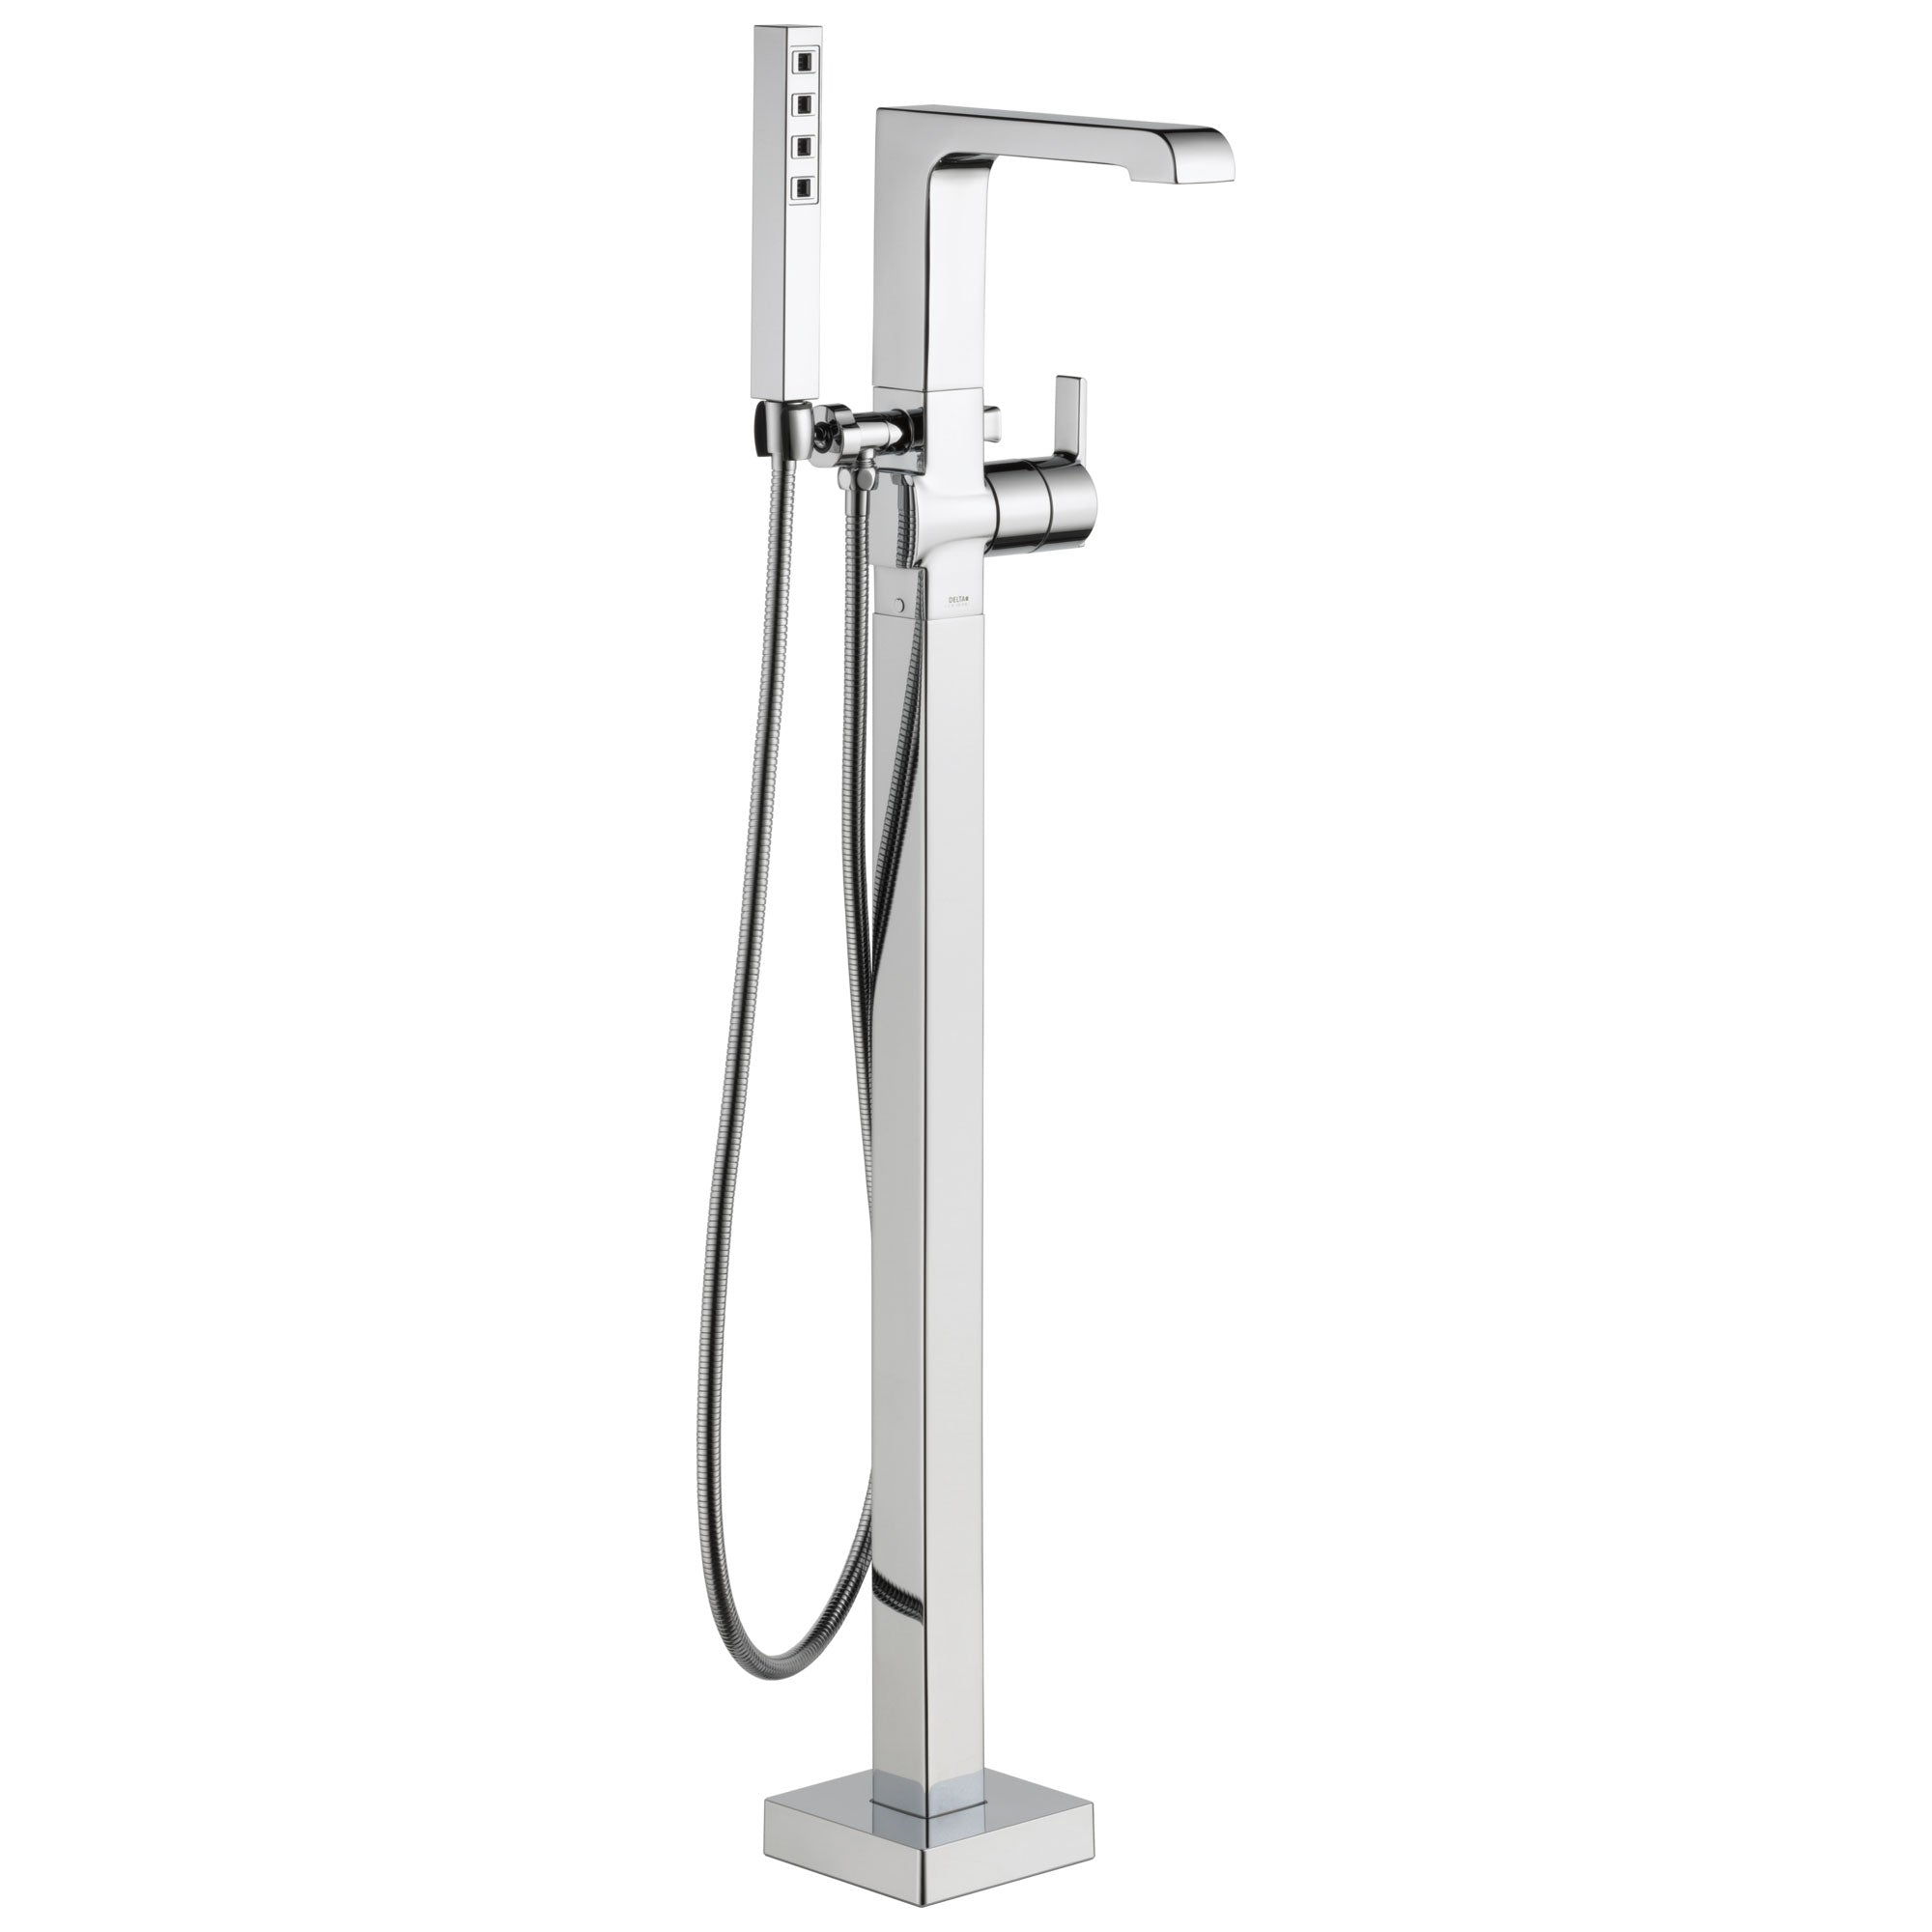 Delta Ara Collection Chrome Floor Mount Freestanding Contemporary Tub Filler Faucet with Hand Shower Includes Trim Kit and Rough-in Valve D2073V